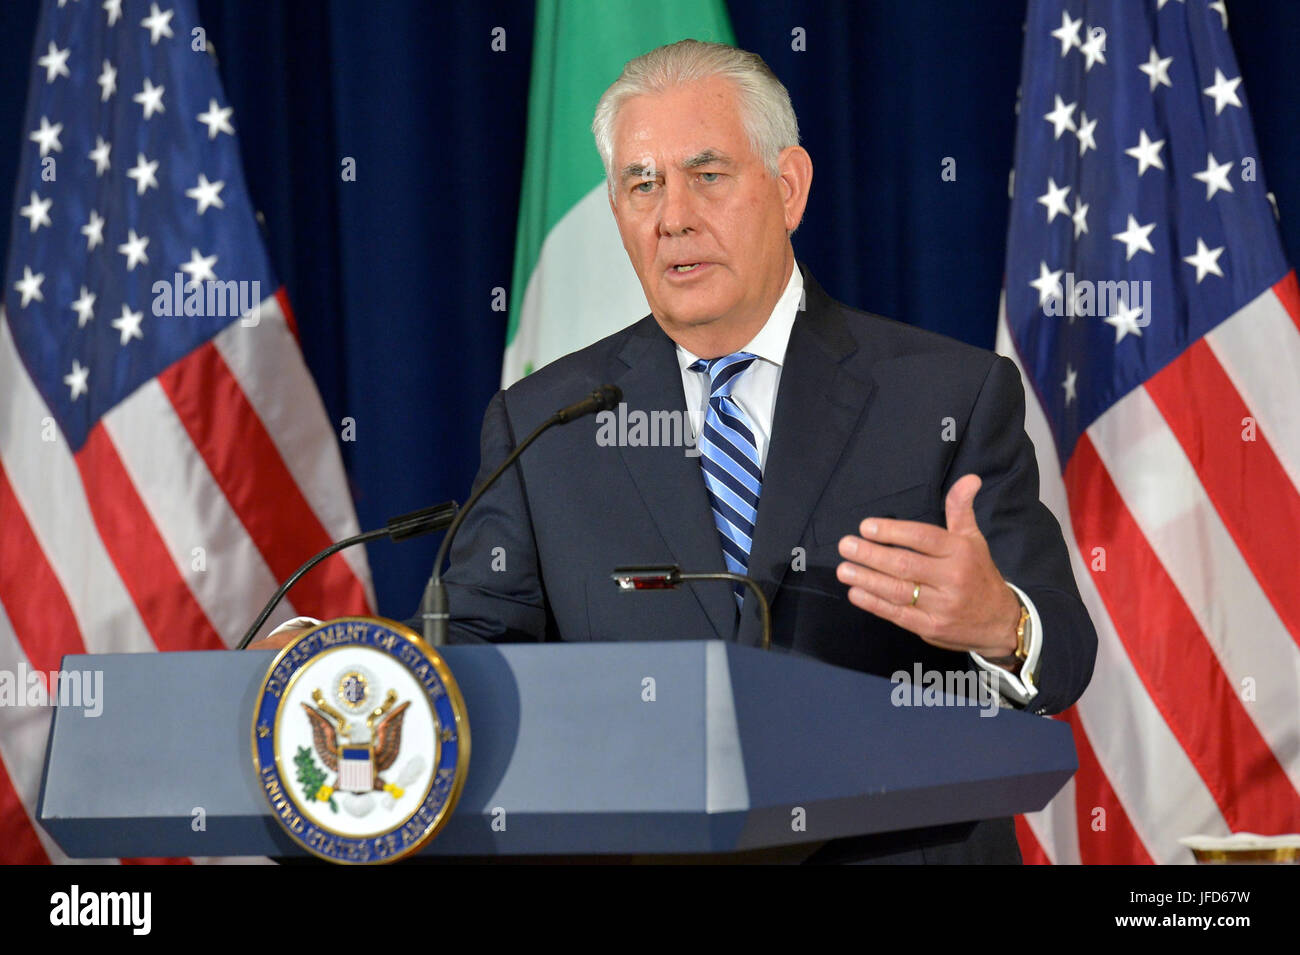 U.S. Secretary of State Rex Tillerson addresses reporters at a press conference with U.S. Secretary of Homeland - Stock Image